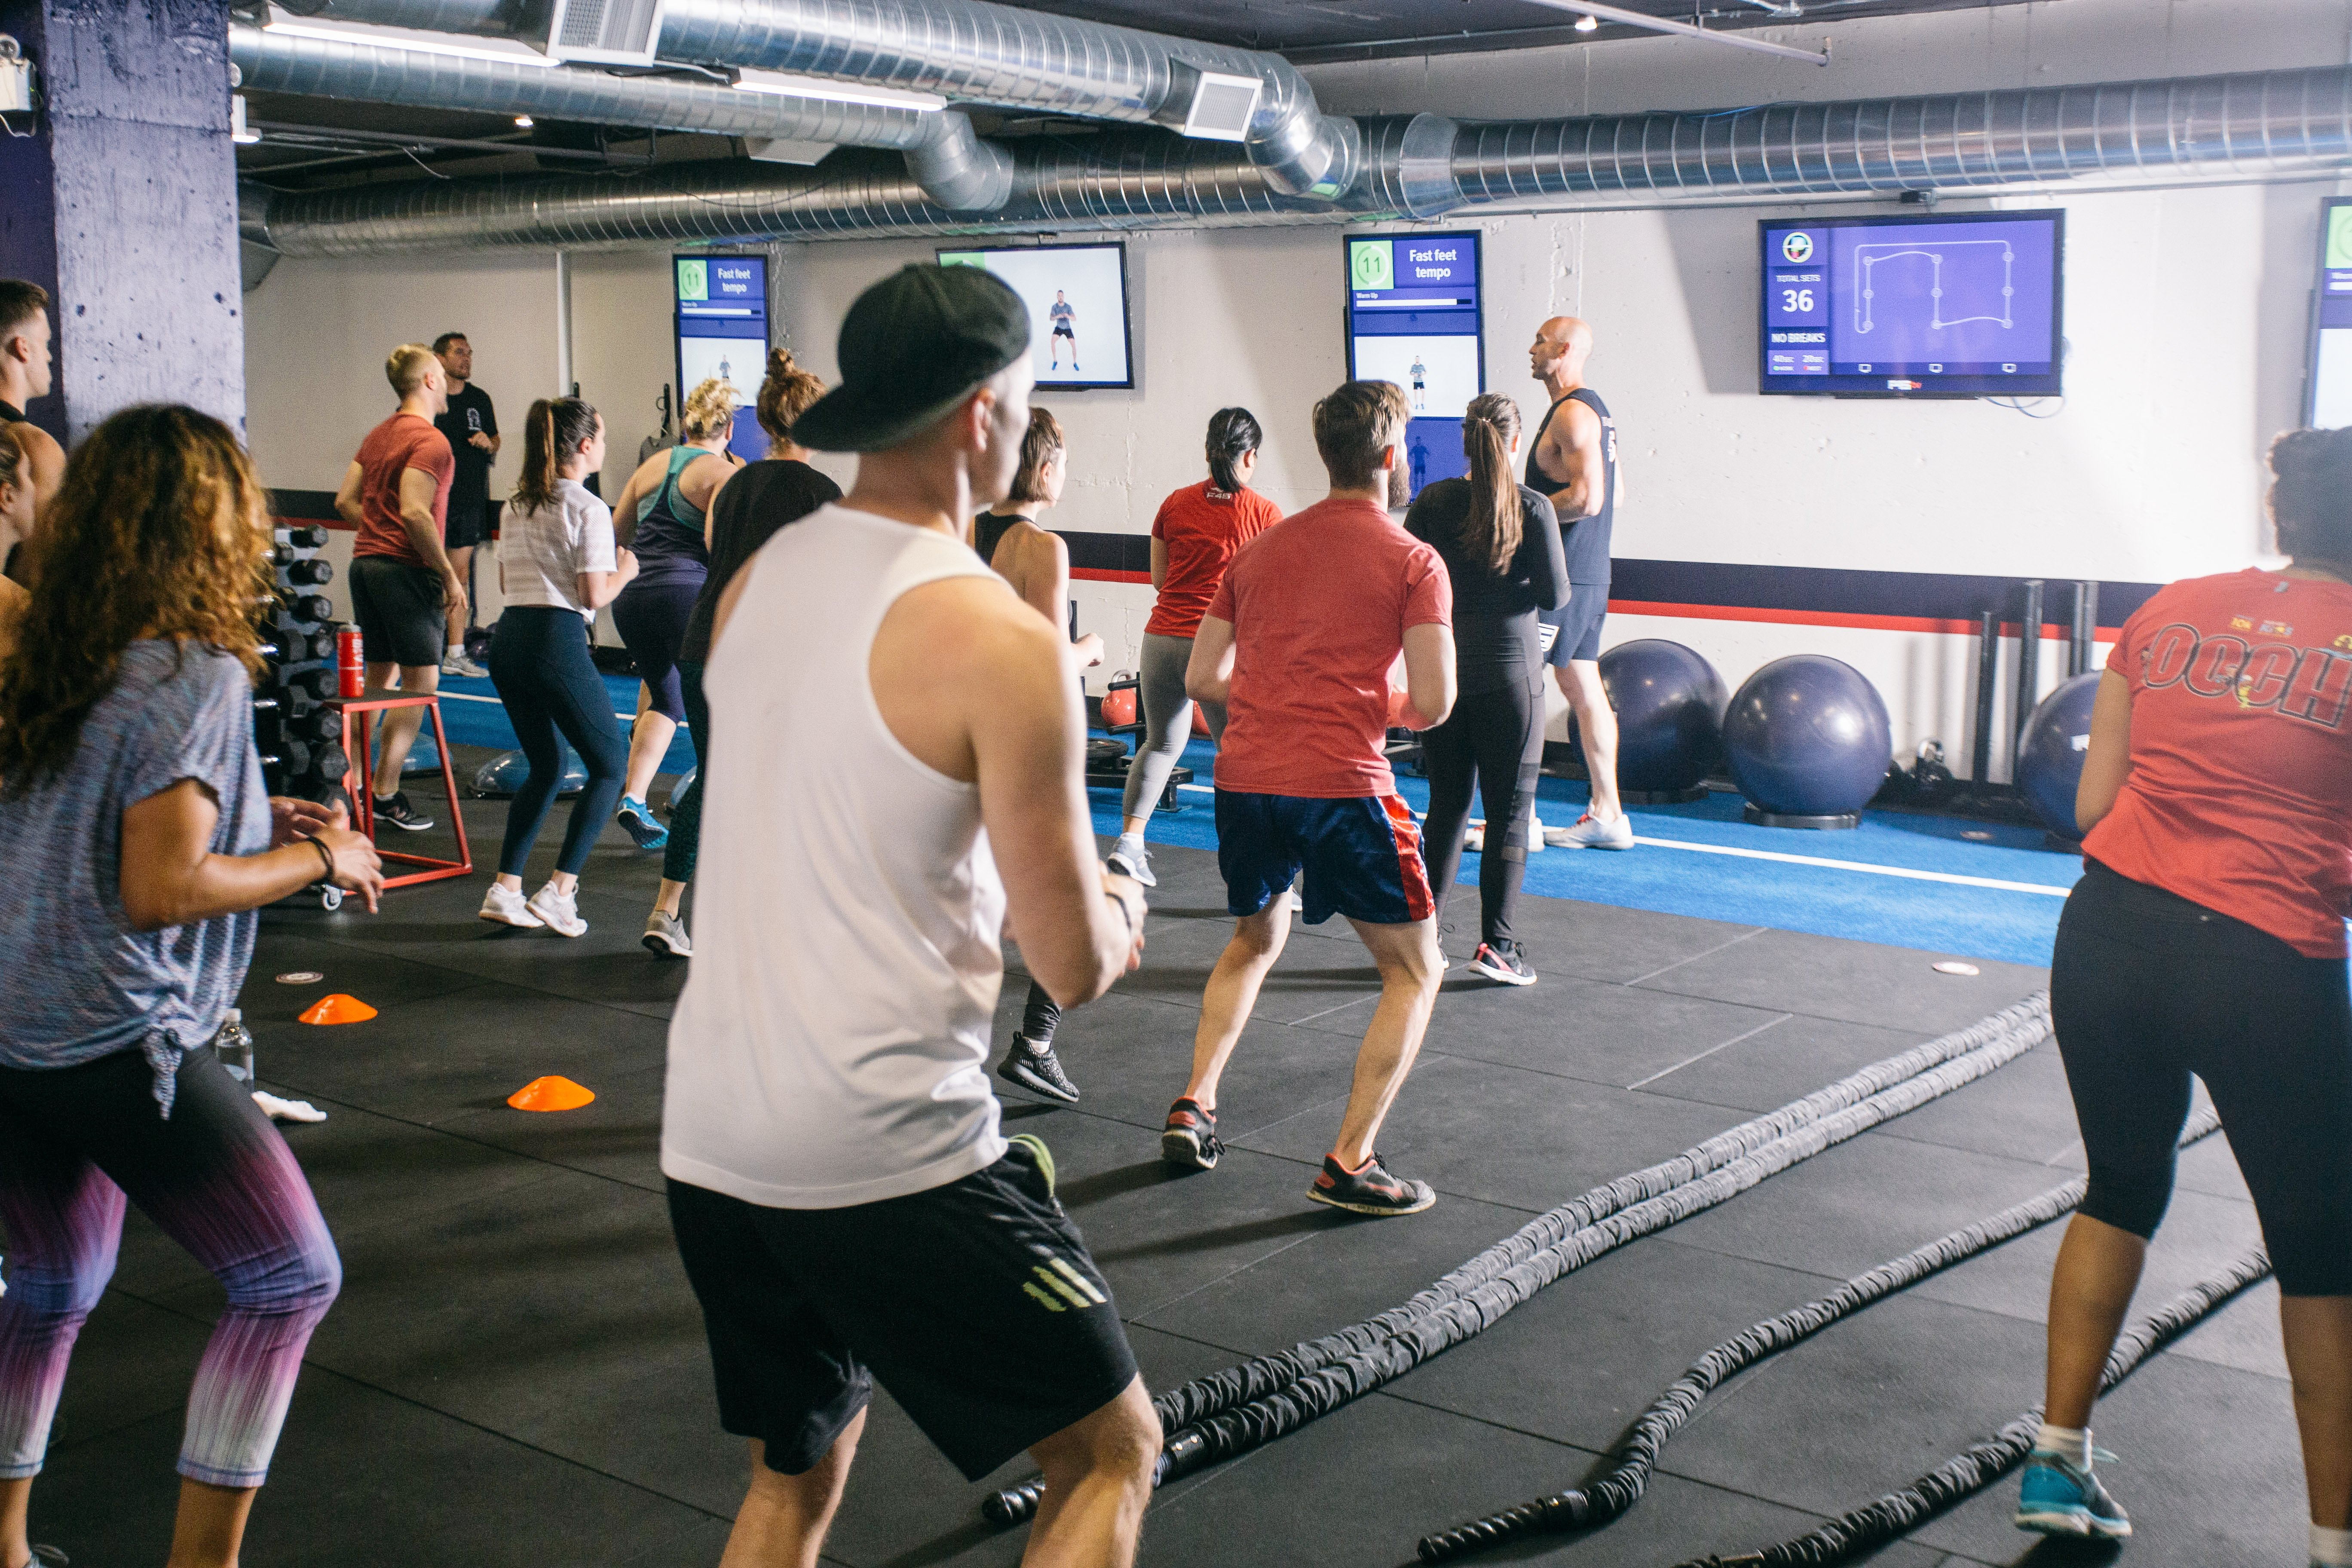 f45 group fitness class as a gift for fathers day